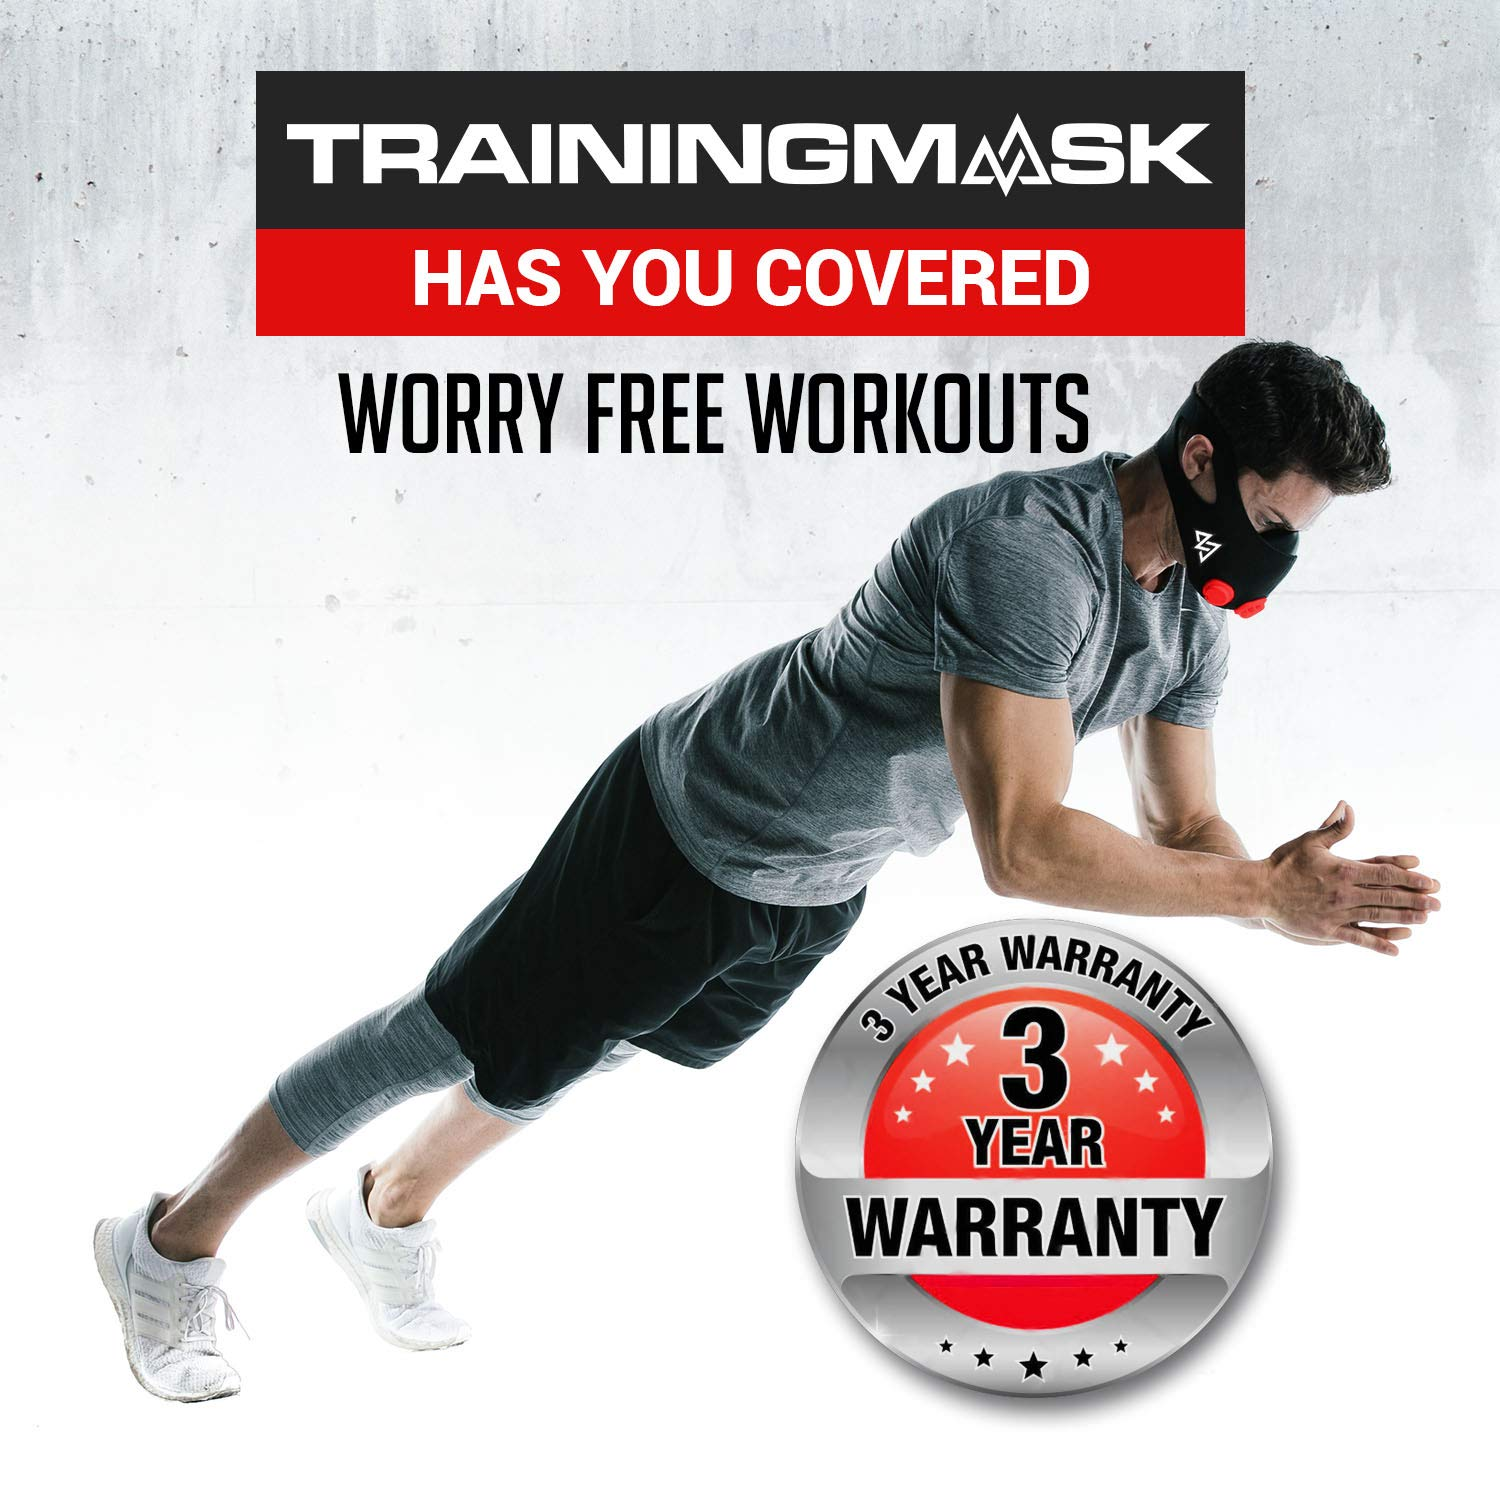 Amazon.com: Training Mask Original 2.0 Workout Mask | Cardio and Endurance Mask, Fitness Mask, Breathing Resistance Mask, Running Mask (Red, Large): Health ...